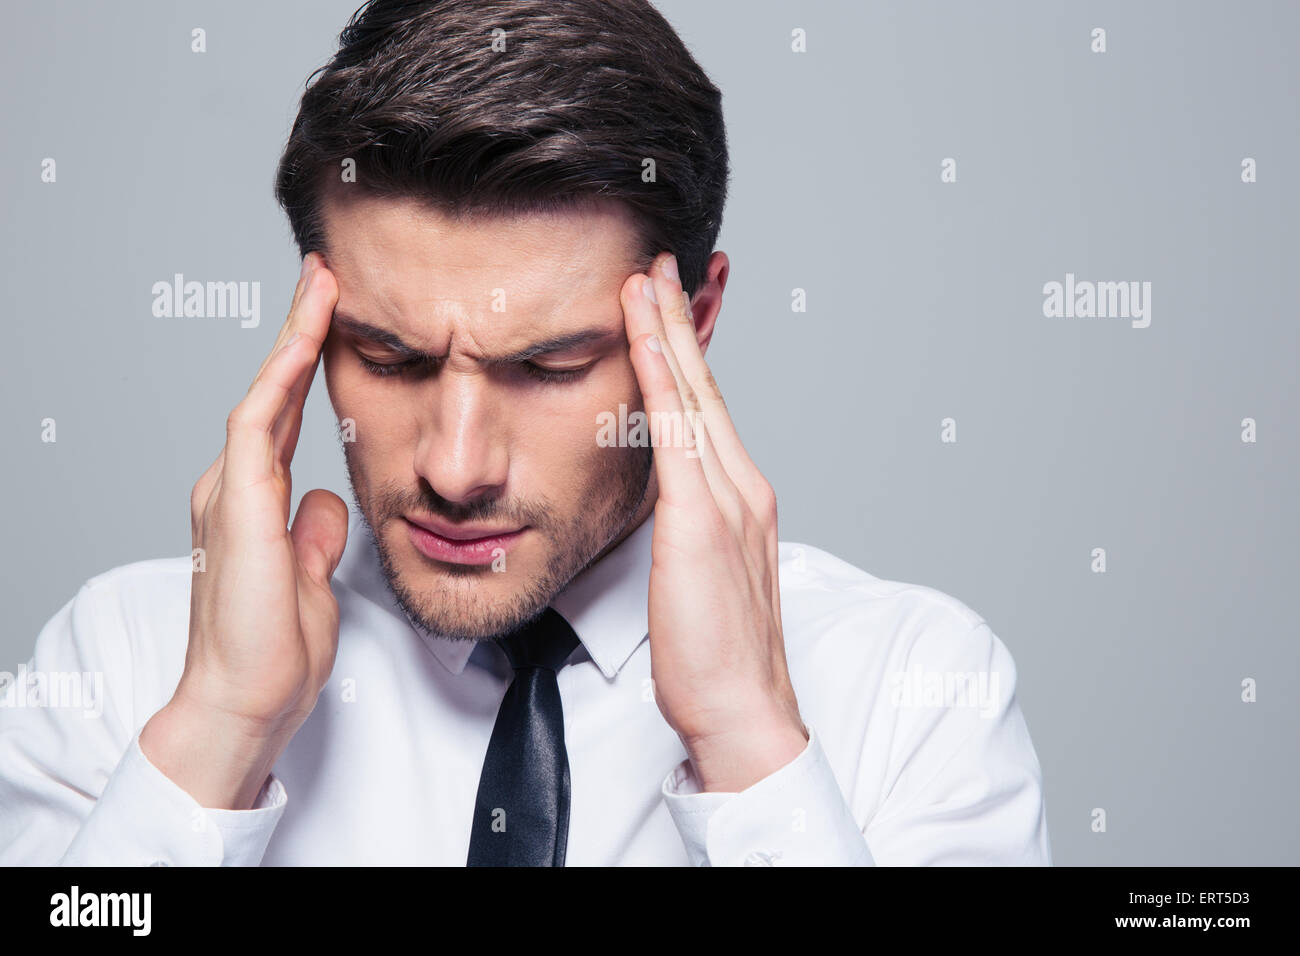 Businessman having headache over gray background - Stock Image